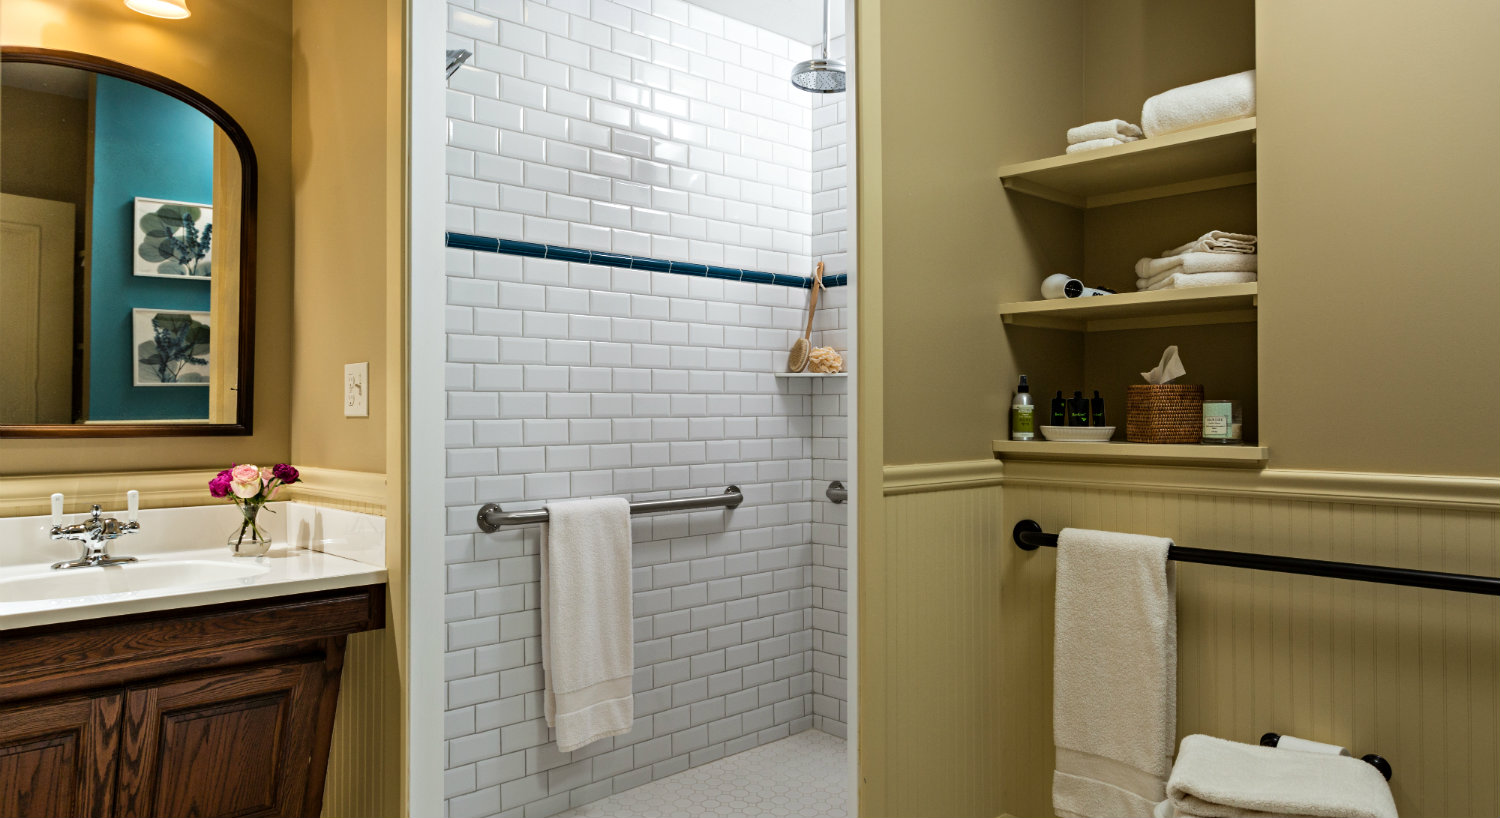 Bathroom with while tiled shower and a wooden vanity with a mirror and built-in storage.